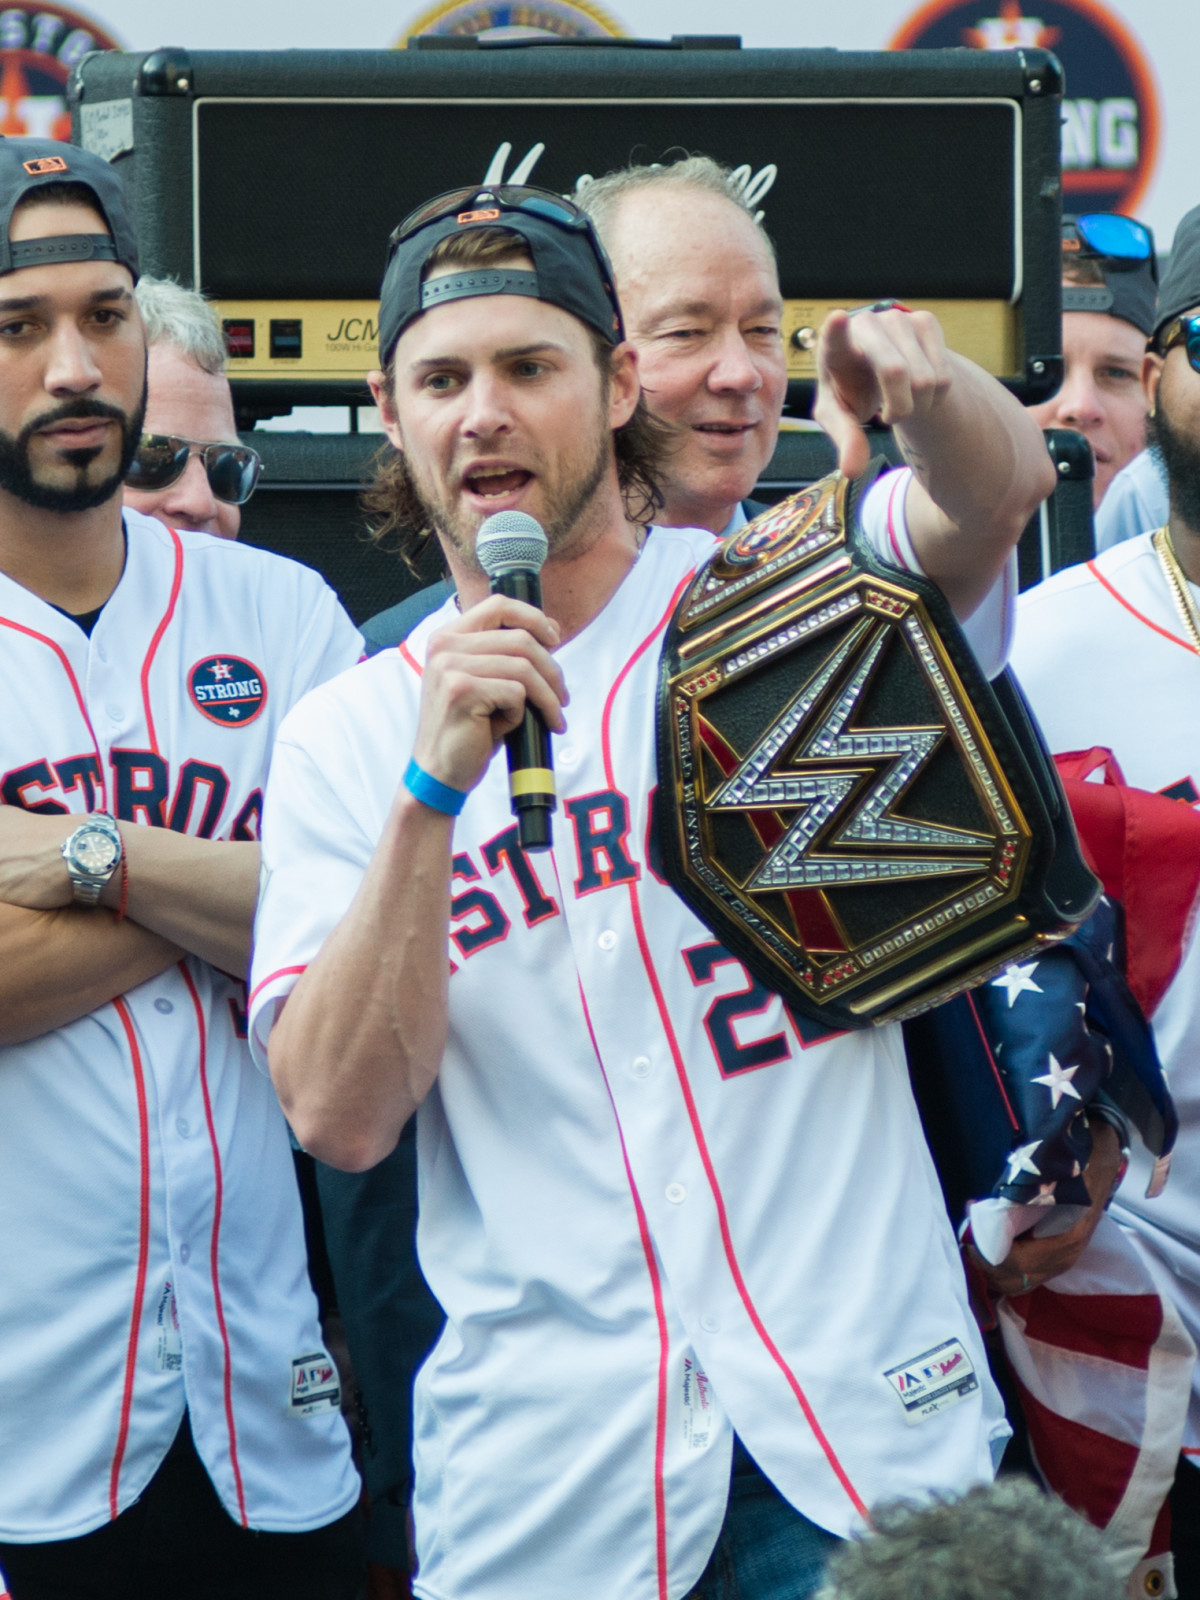 Astros World Series victory parade and rally Josh Reddick